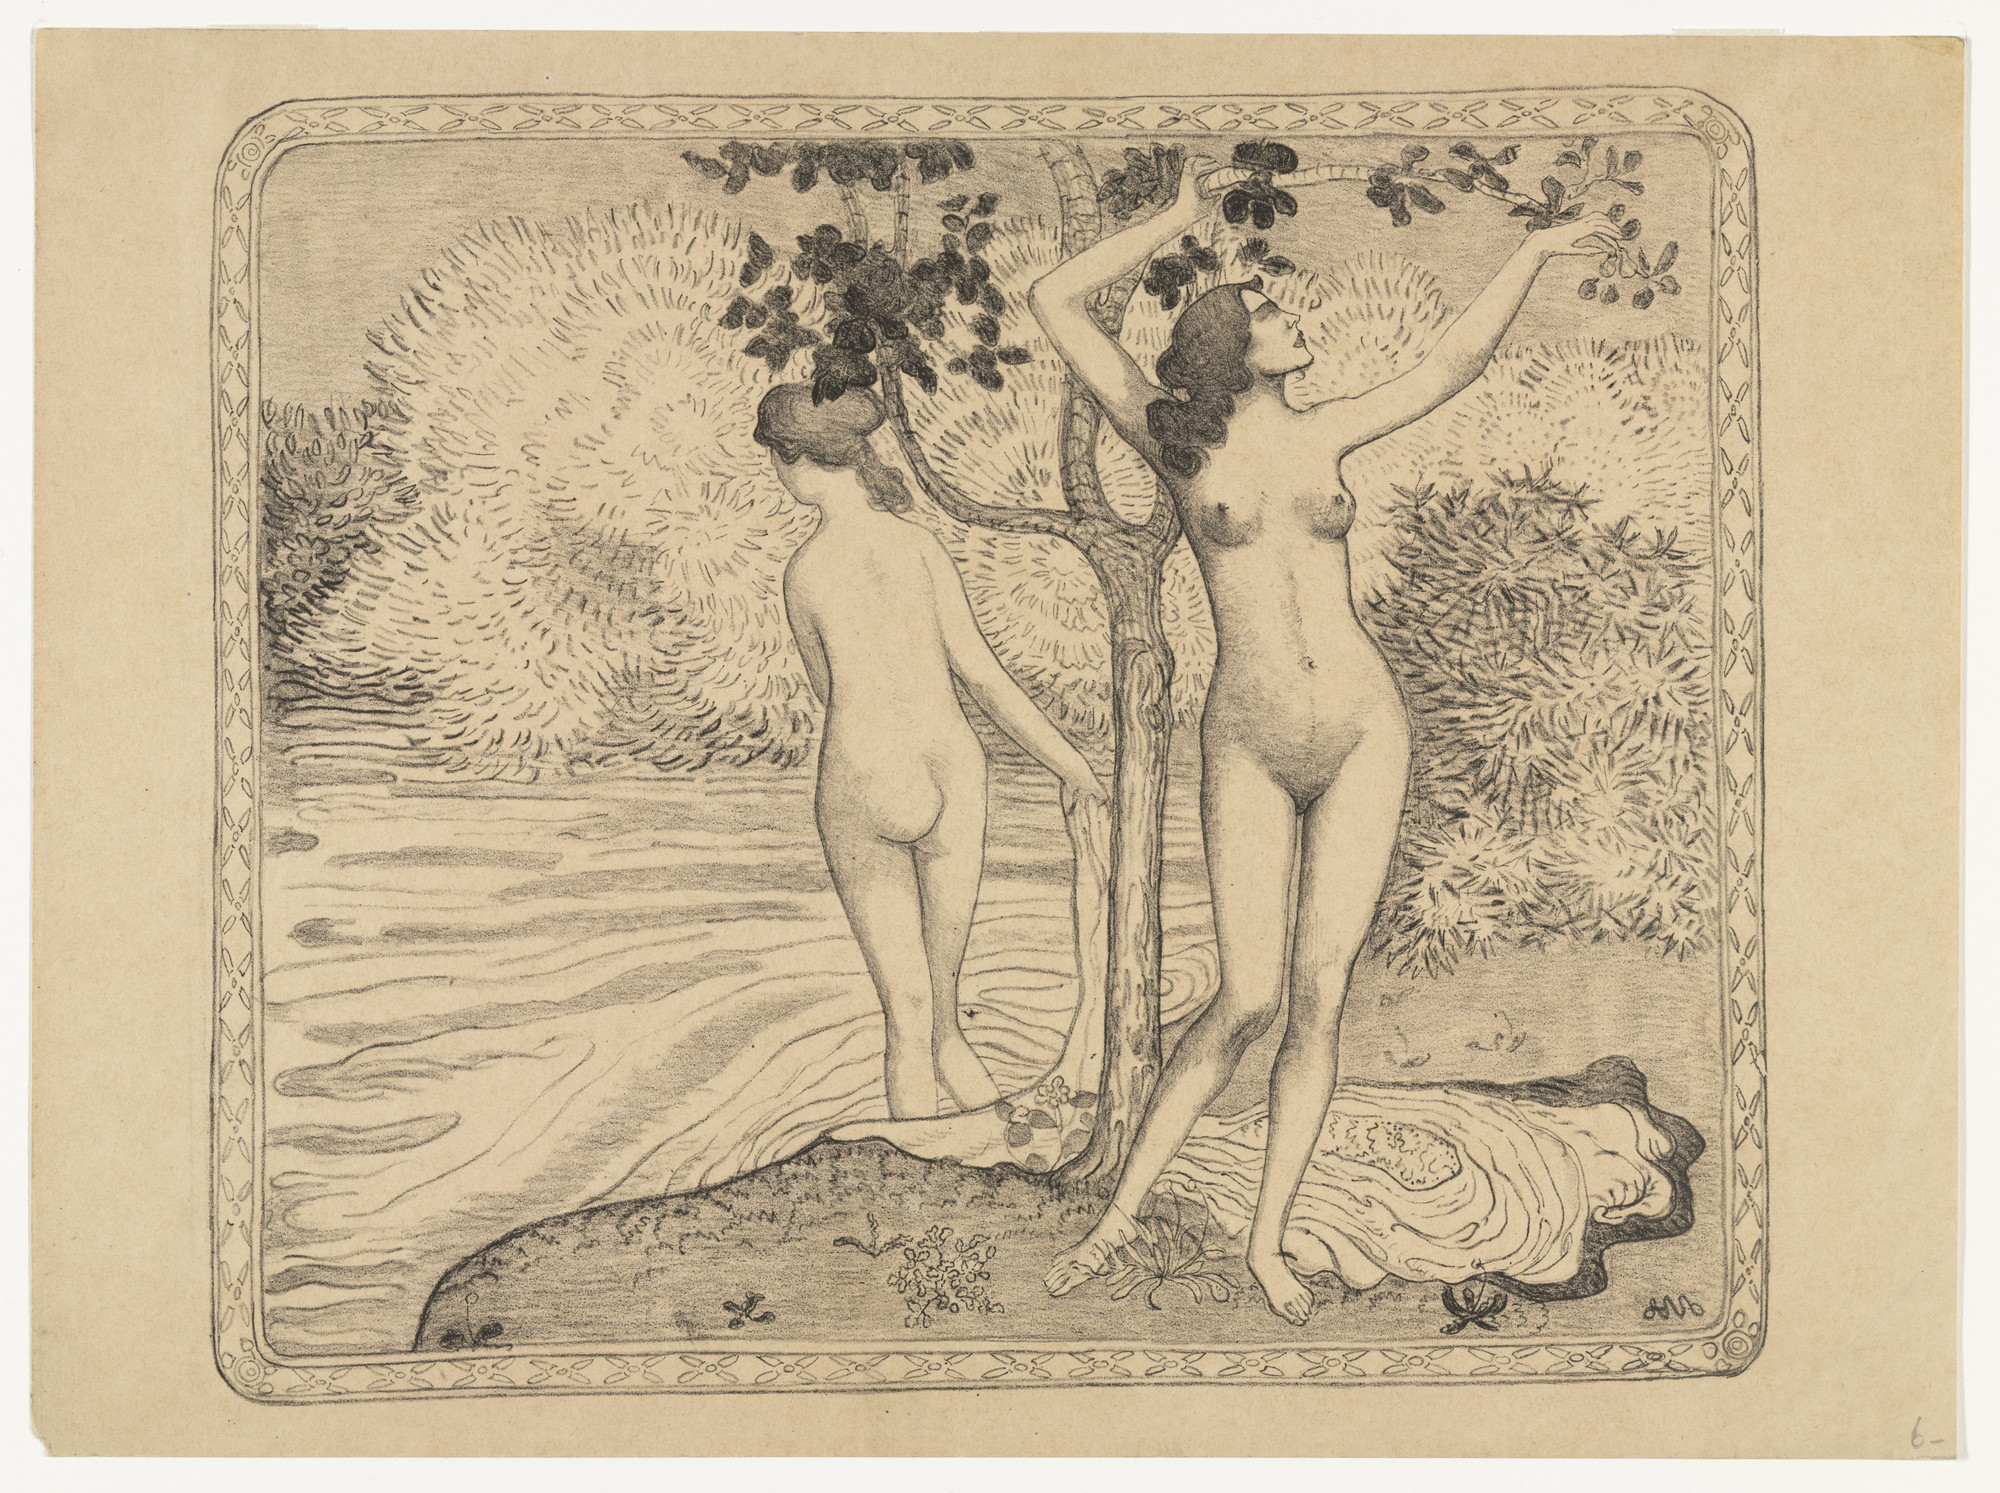 Aristide Maillol. Two Nude Bathers Under a Tree at the Water's Edge (Deux baigneuses nues sous un arbre au bord de l'eau). (1895)